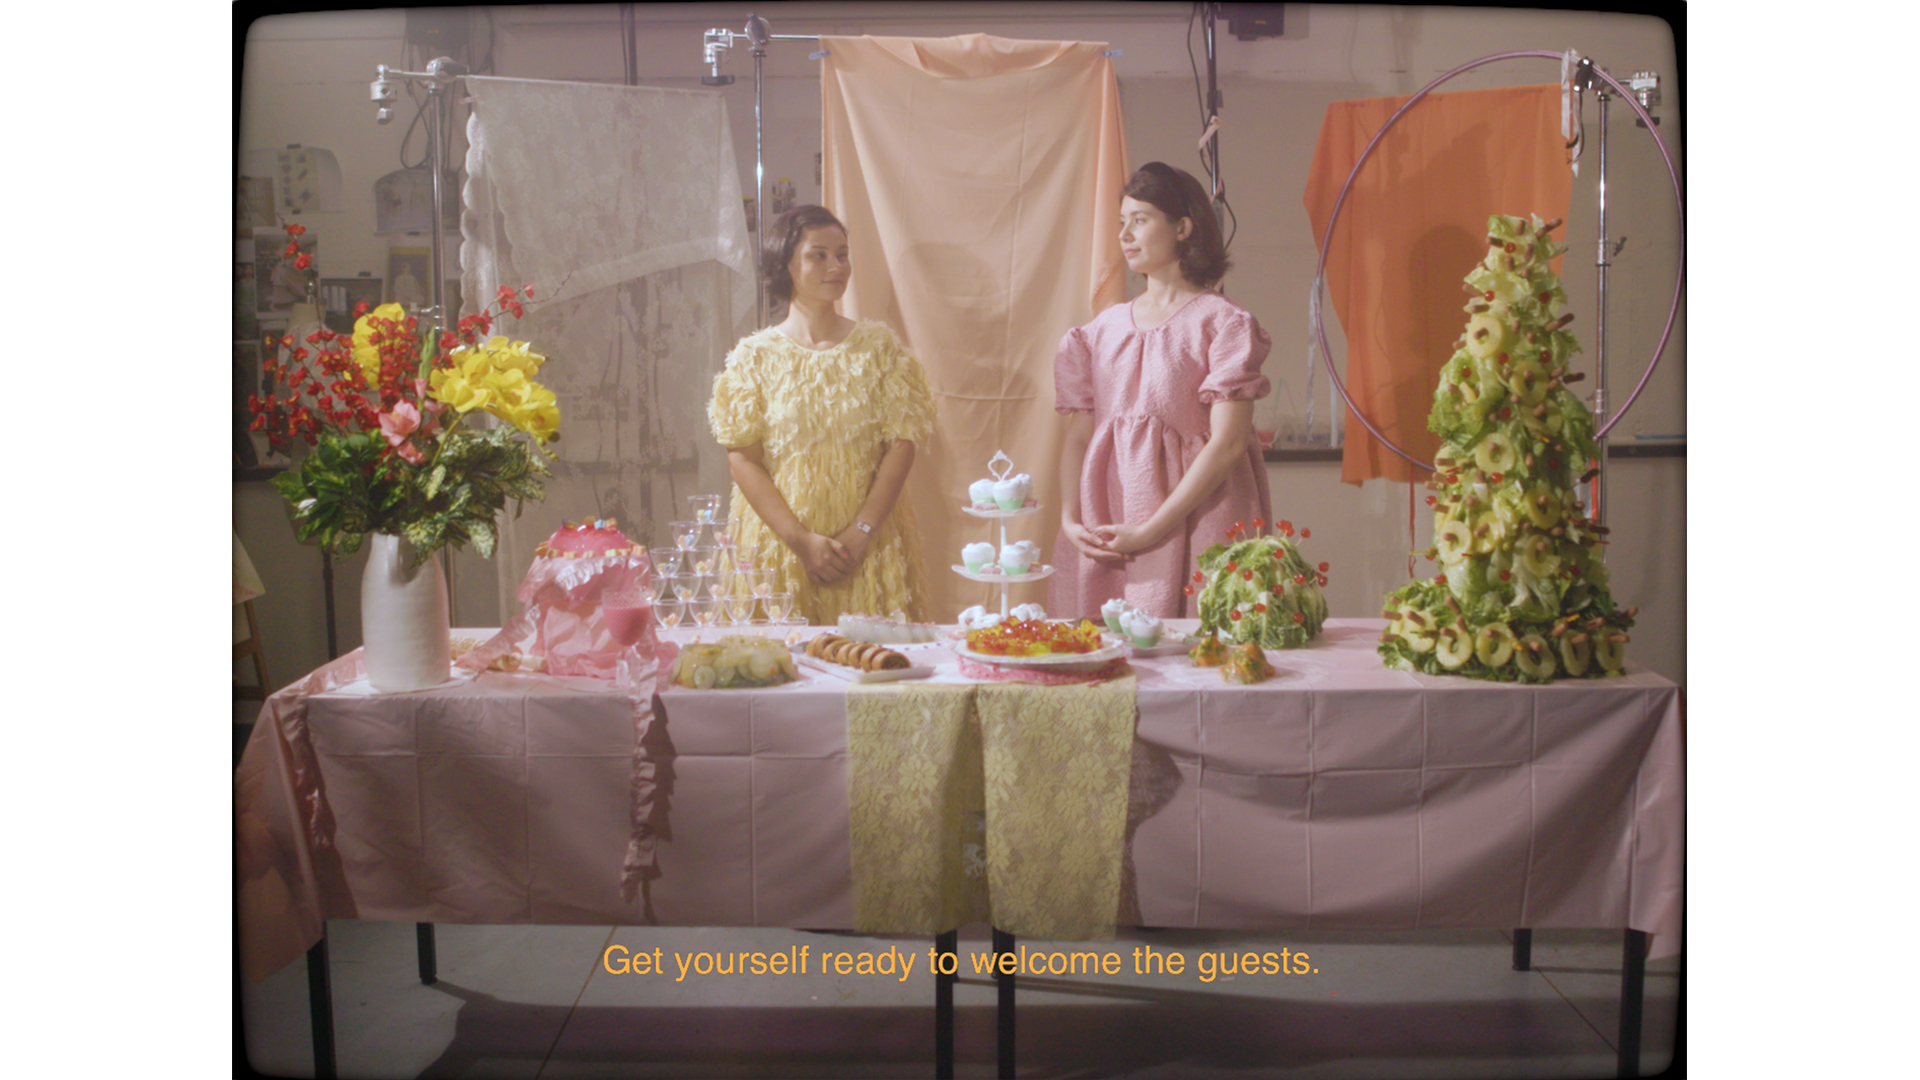 film still of 2 formally dressed women behind a table decorated with flowers